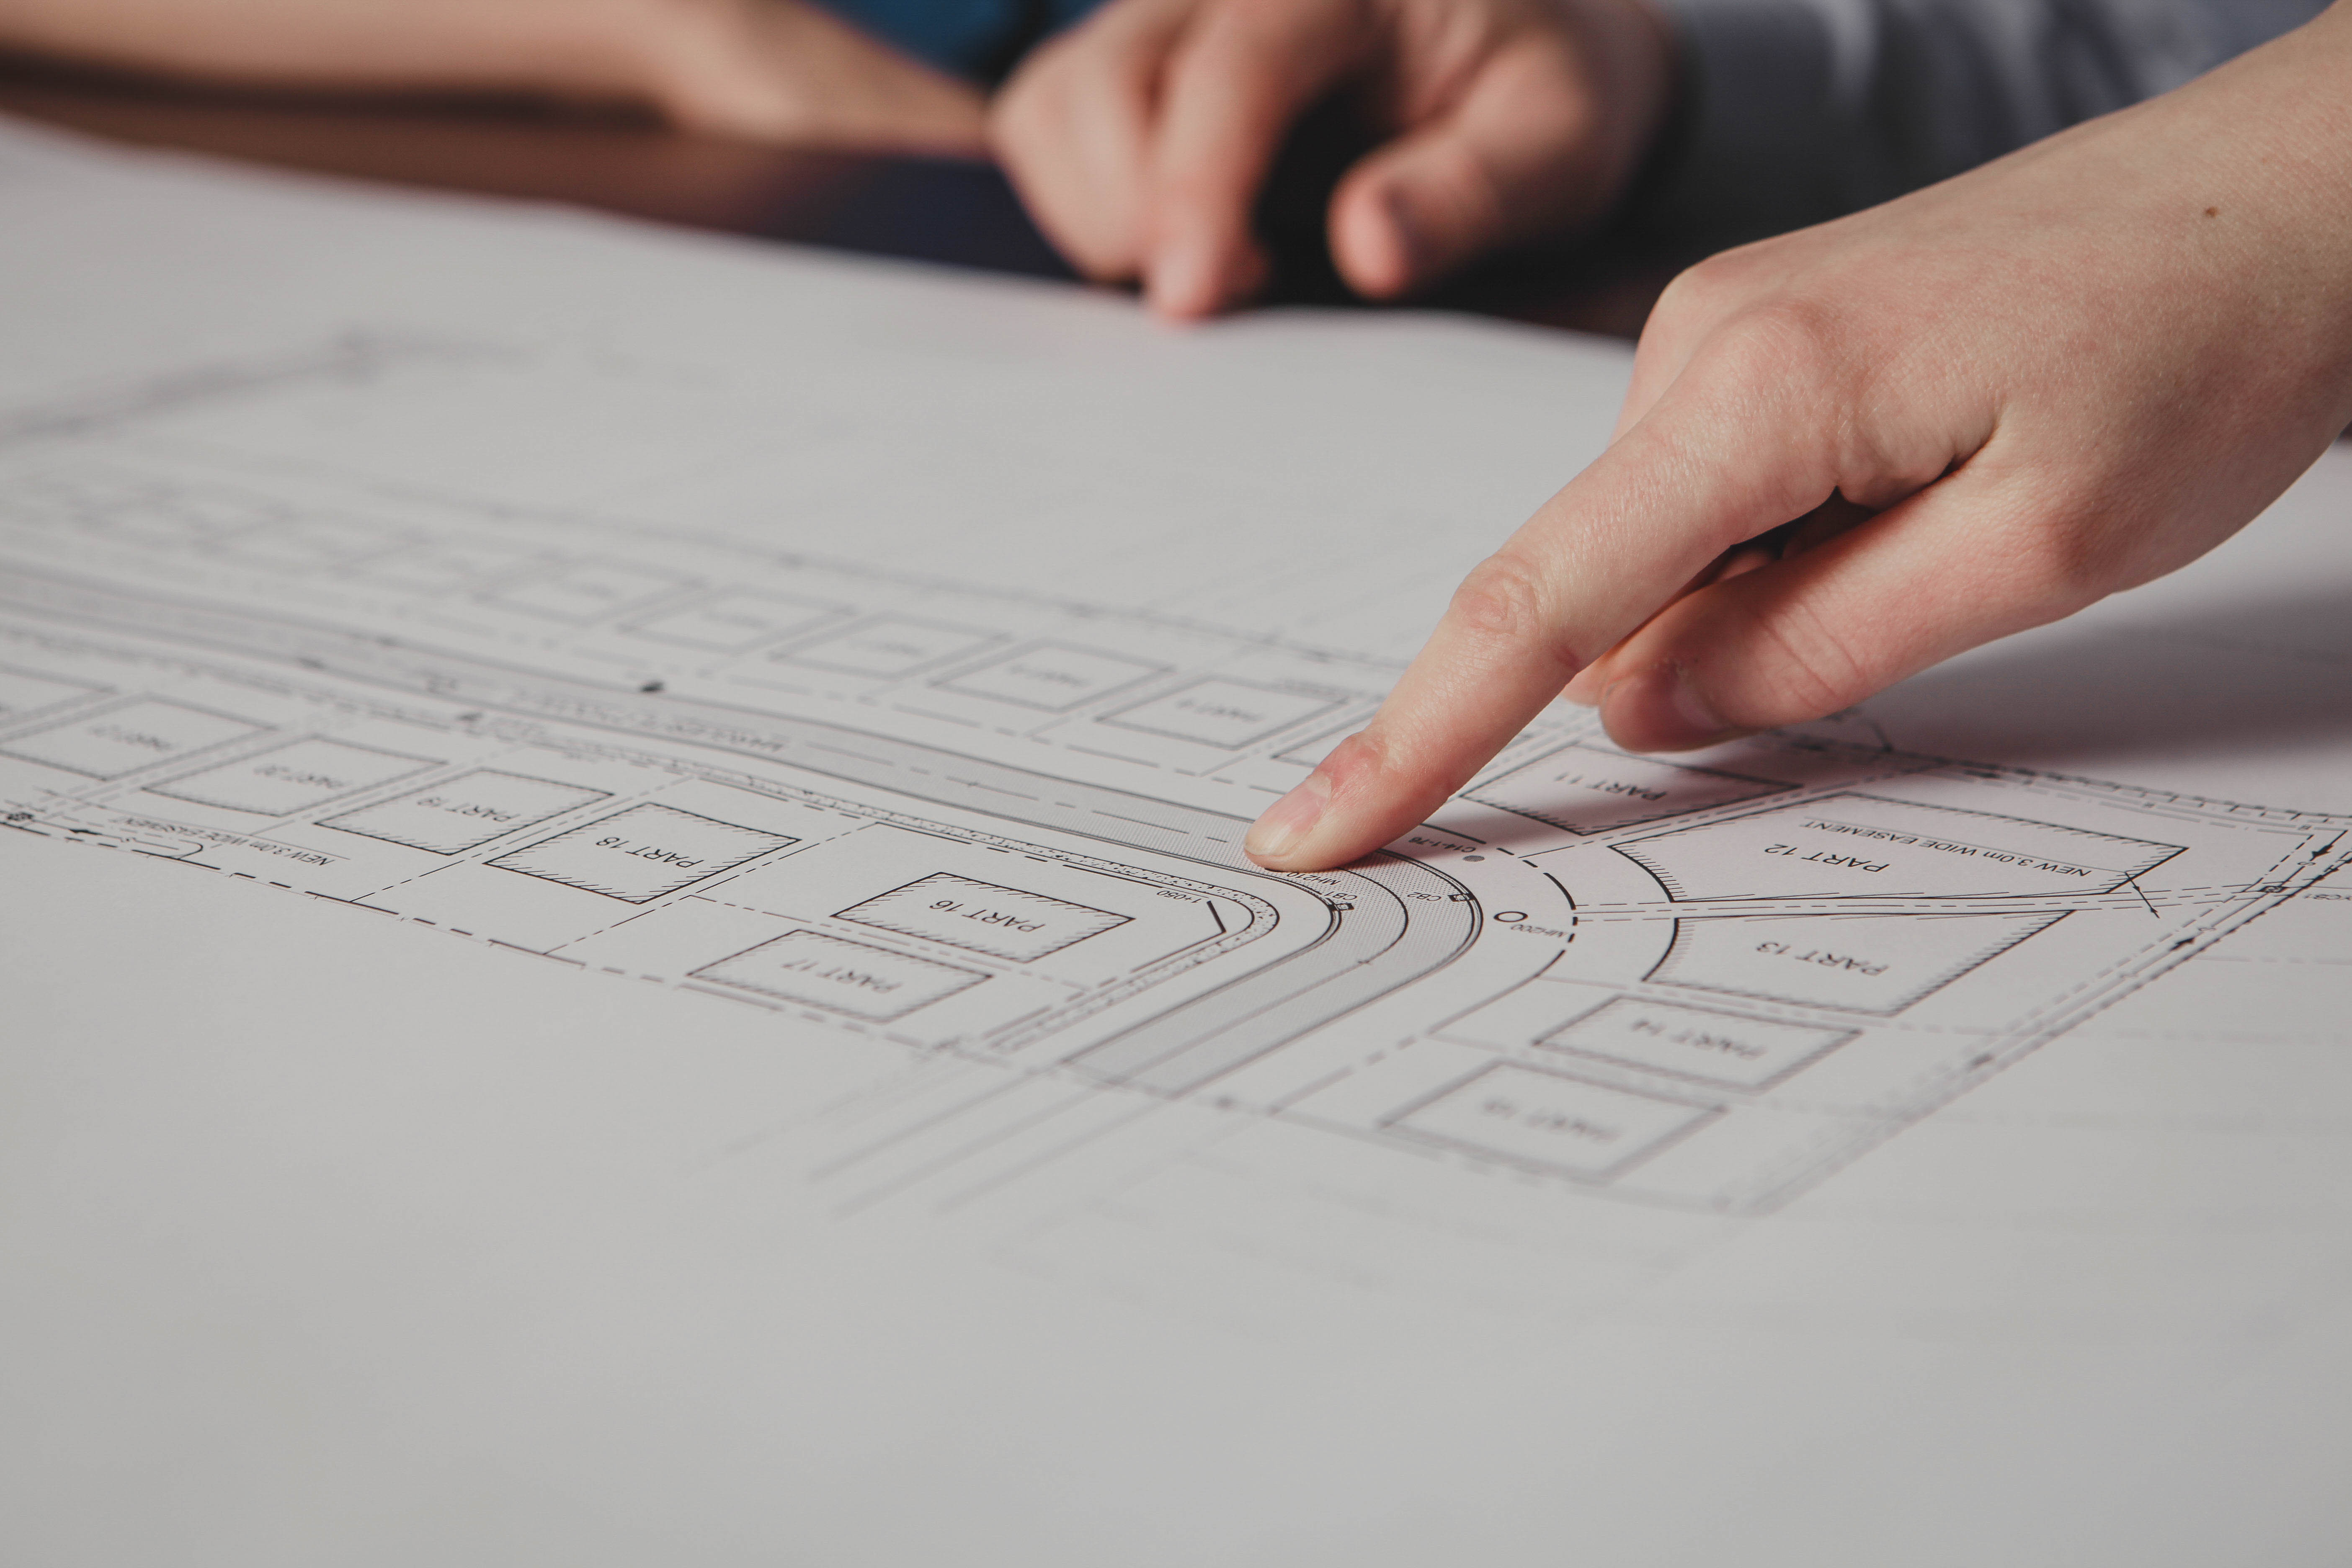 Photo of hand pointing at engineering plans